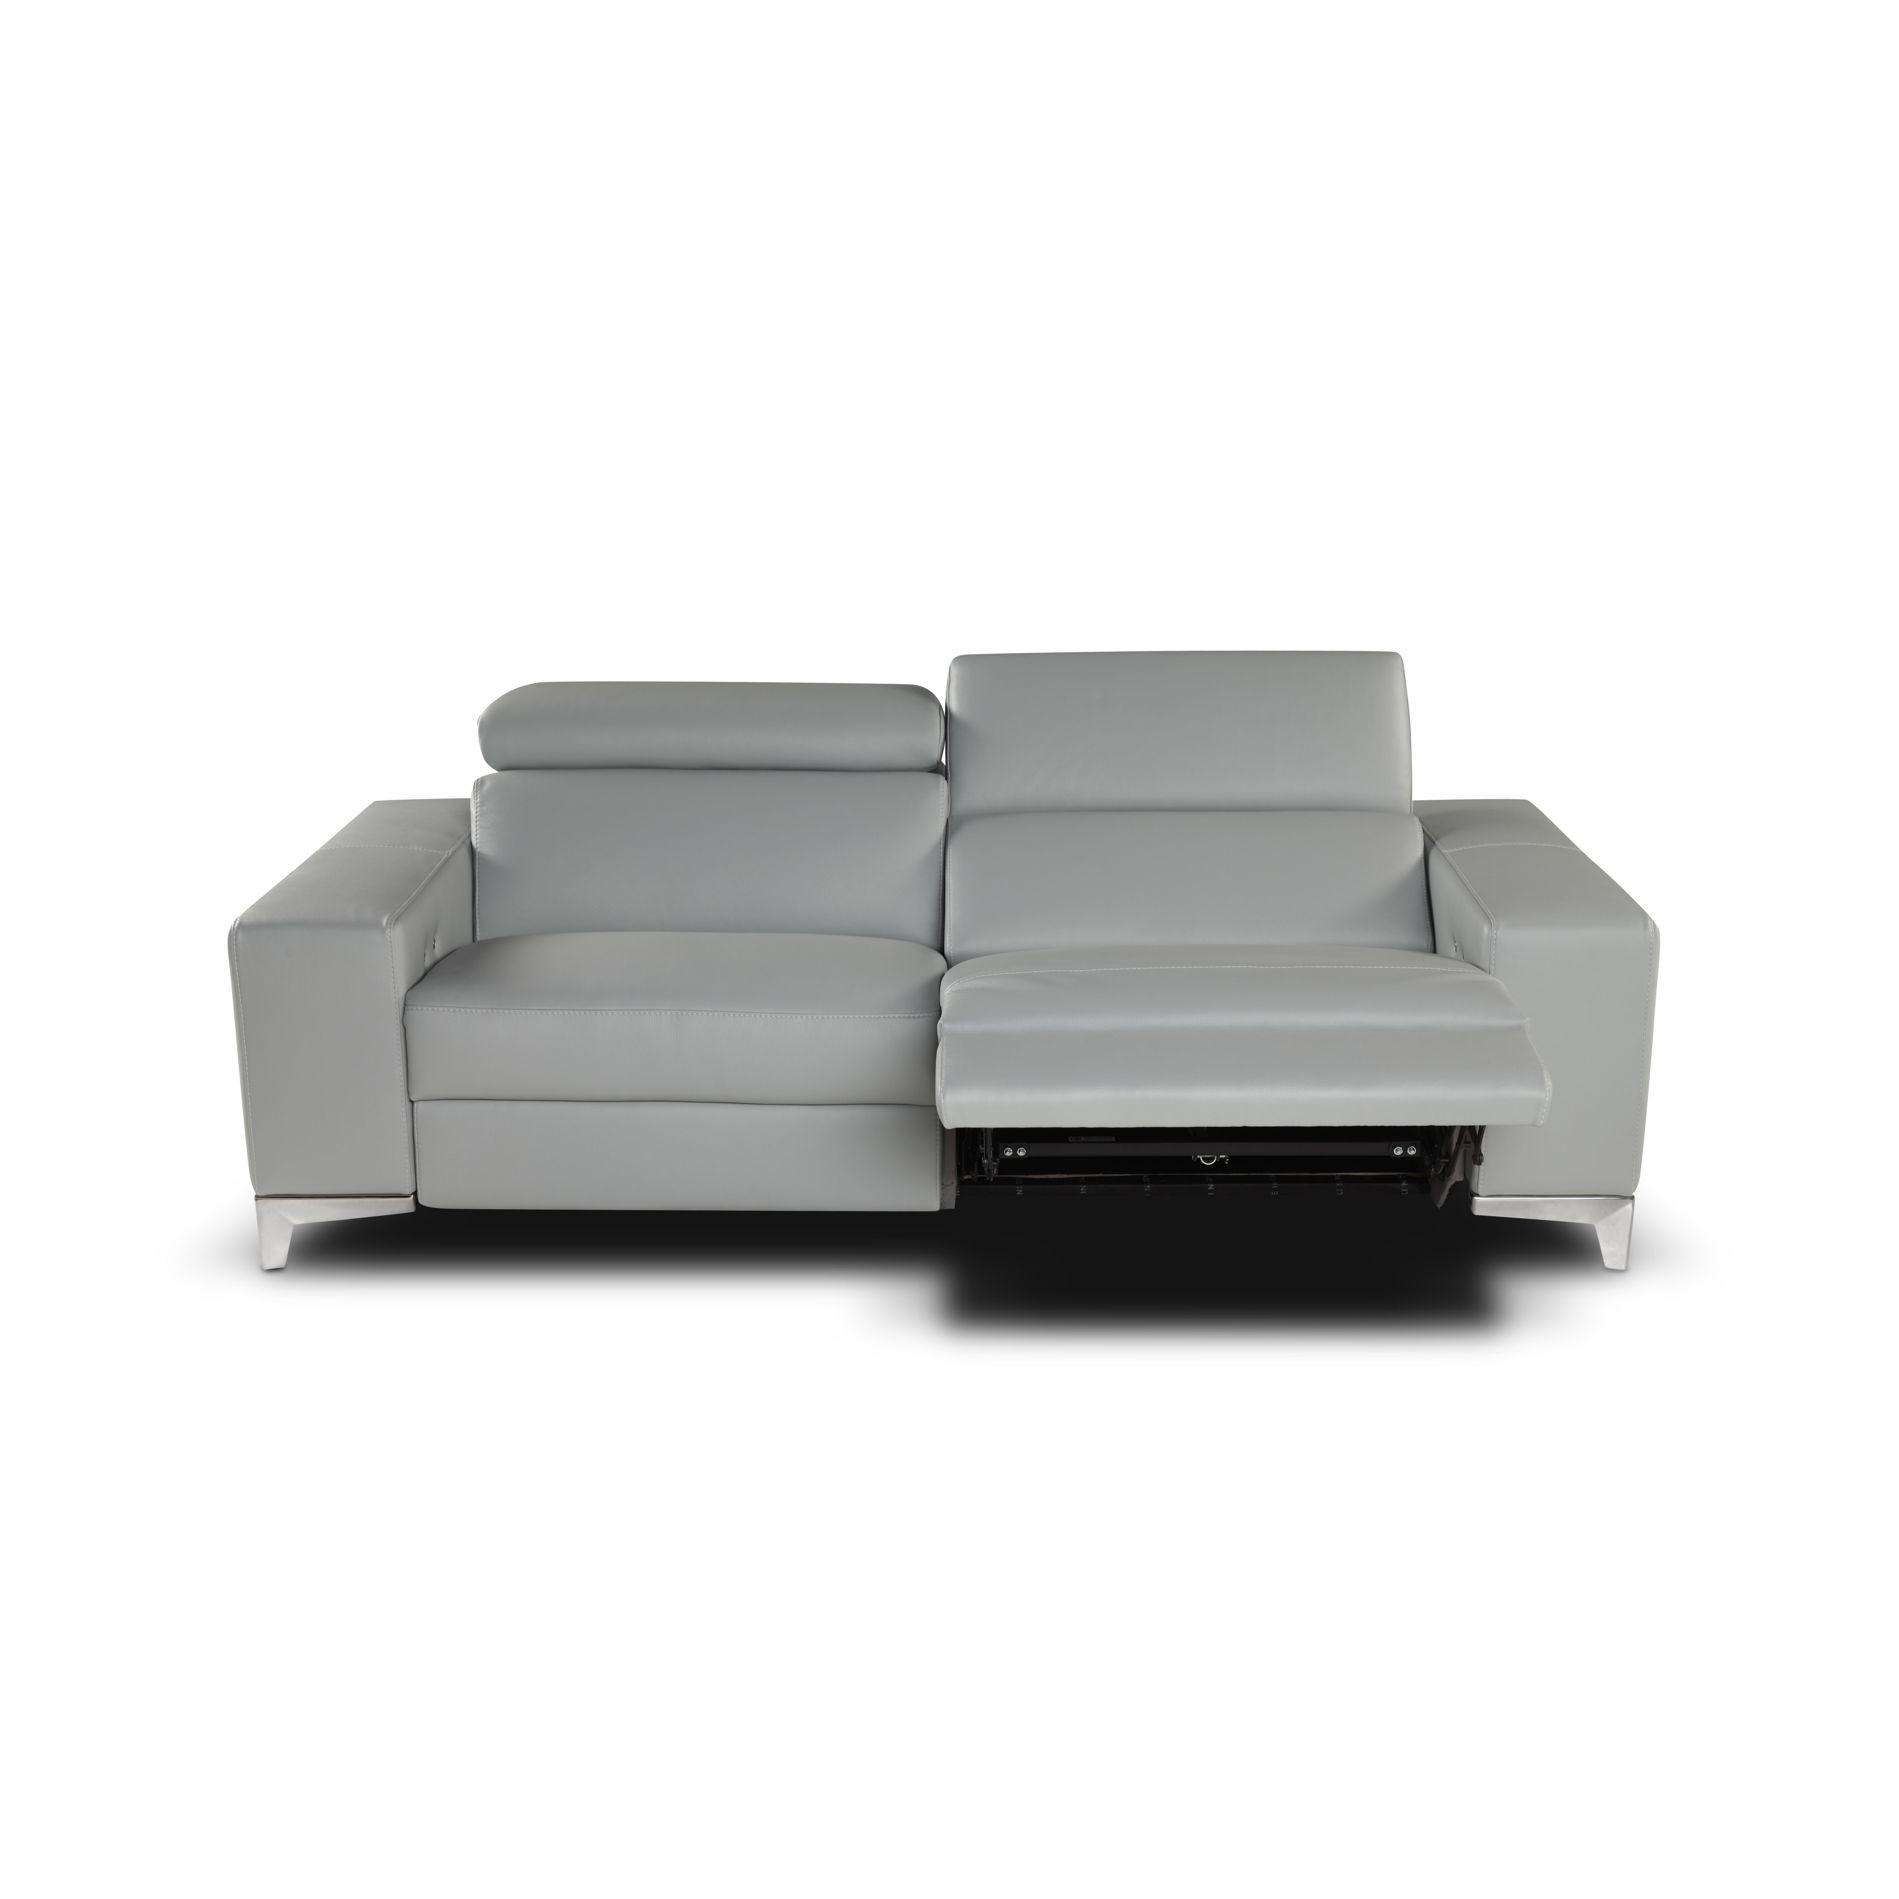 Queen Leather Sofa Set | Giuseppe&giuseppe For Italian Recliner Sofas (Image 14 of 20)